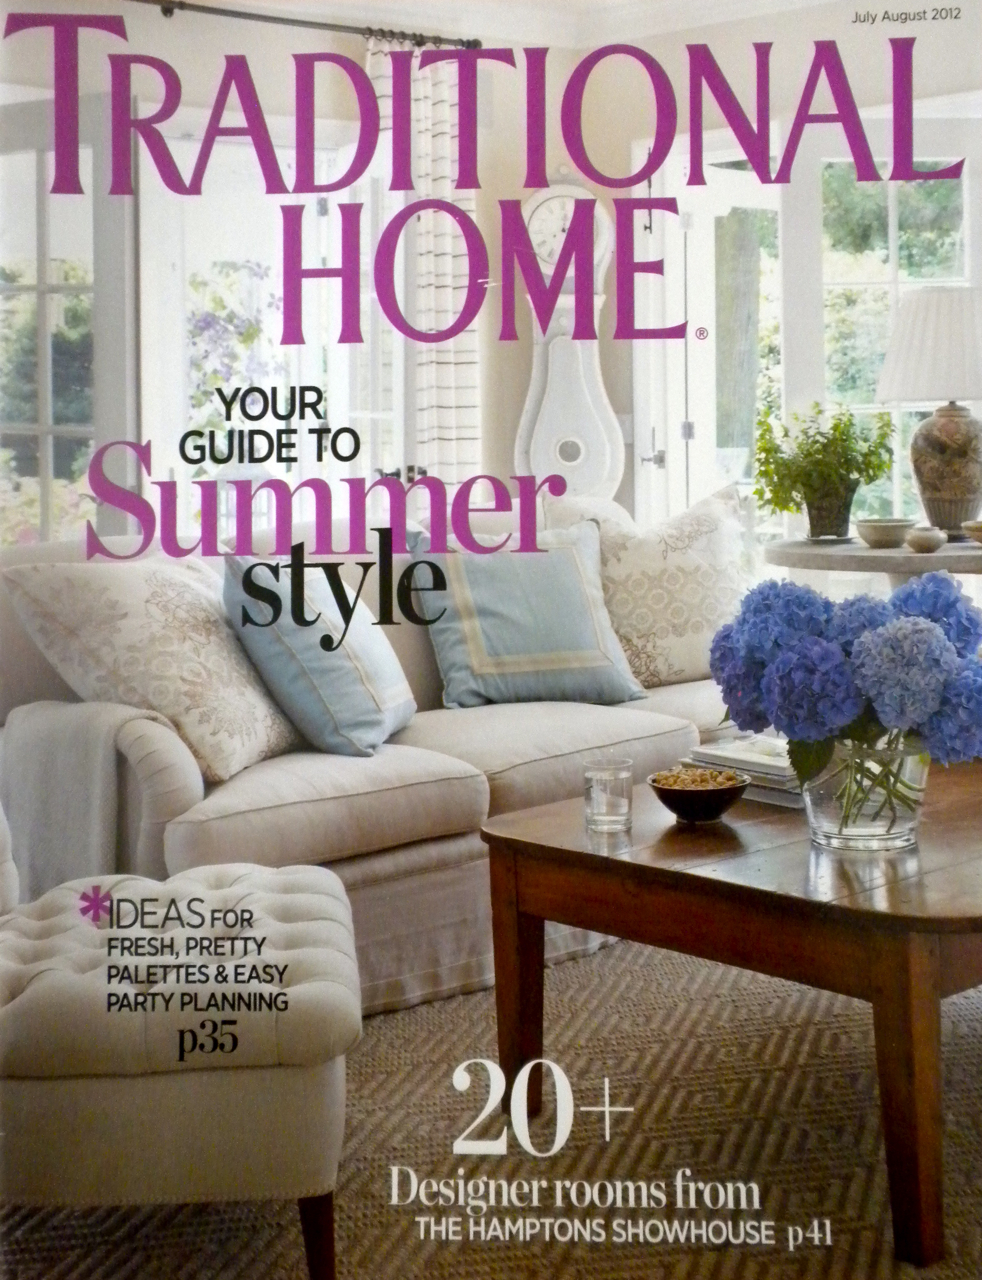 Traditional Home - July-Aug 2012